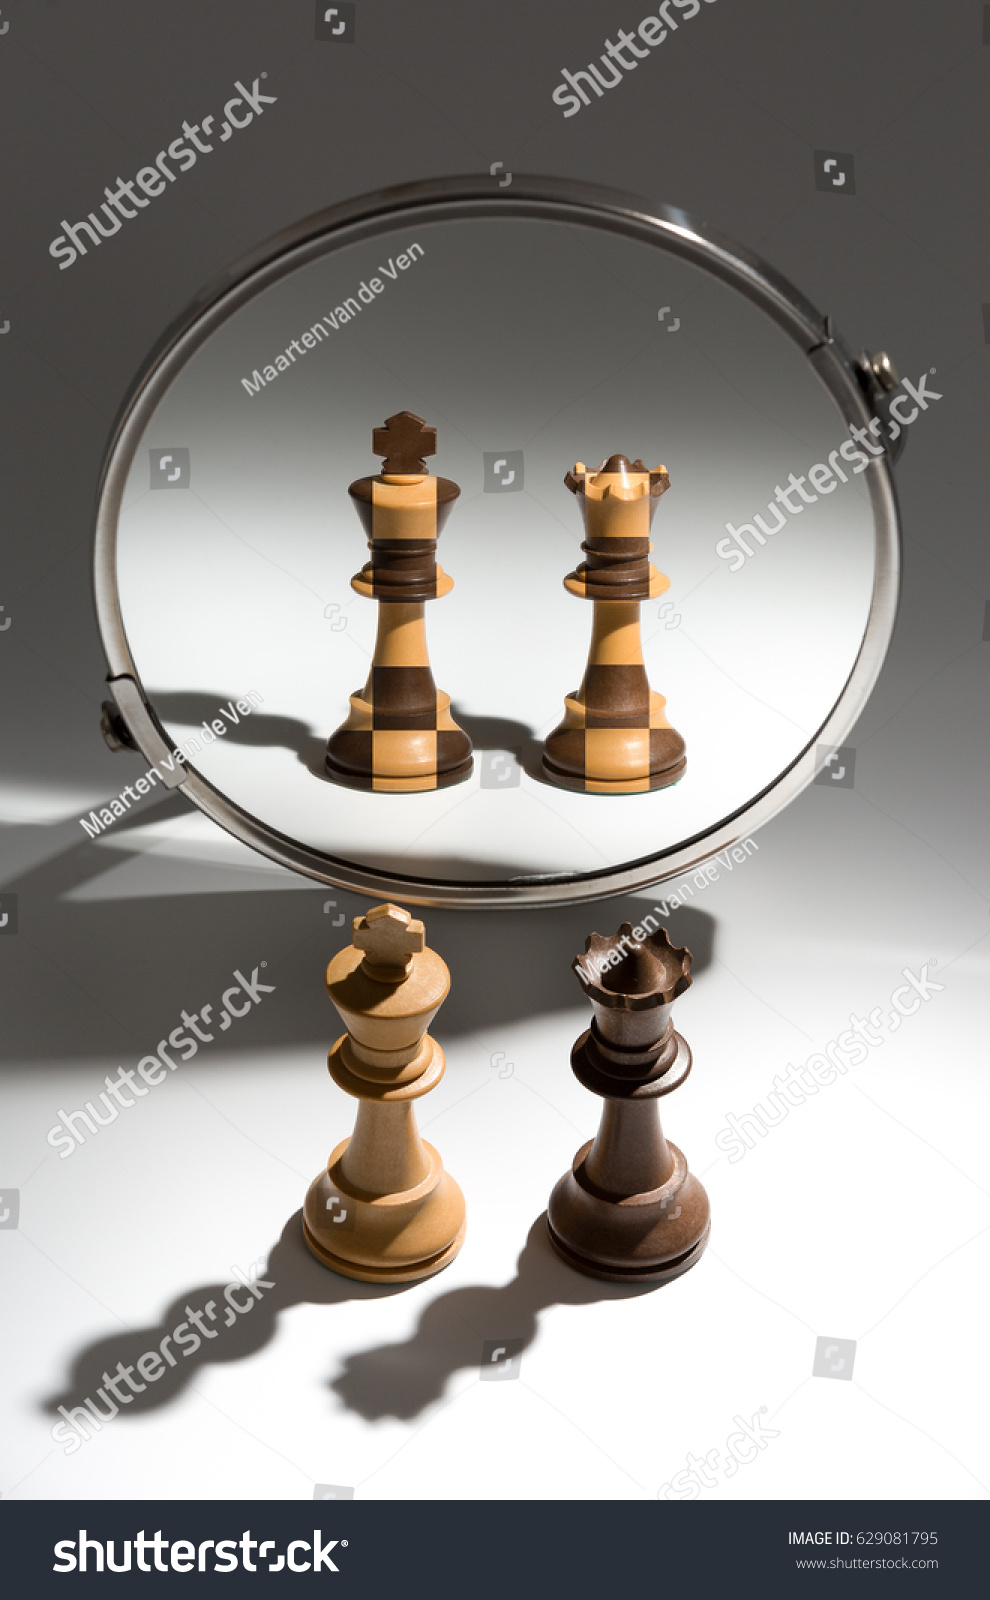 A couple of a white king and black queen chess pieces stand in front of a